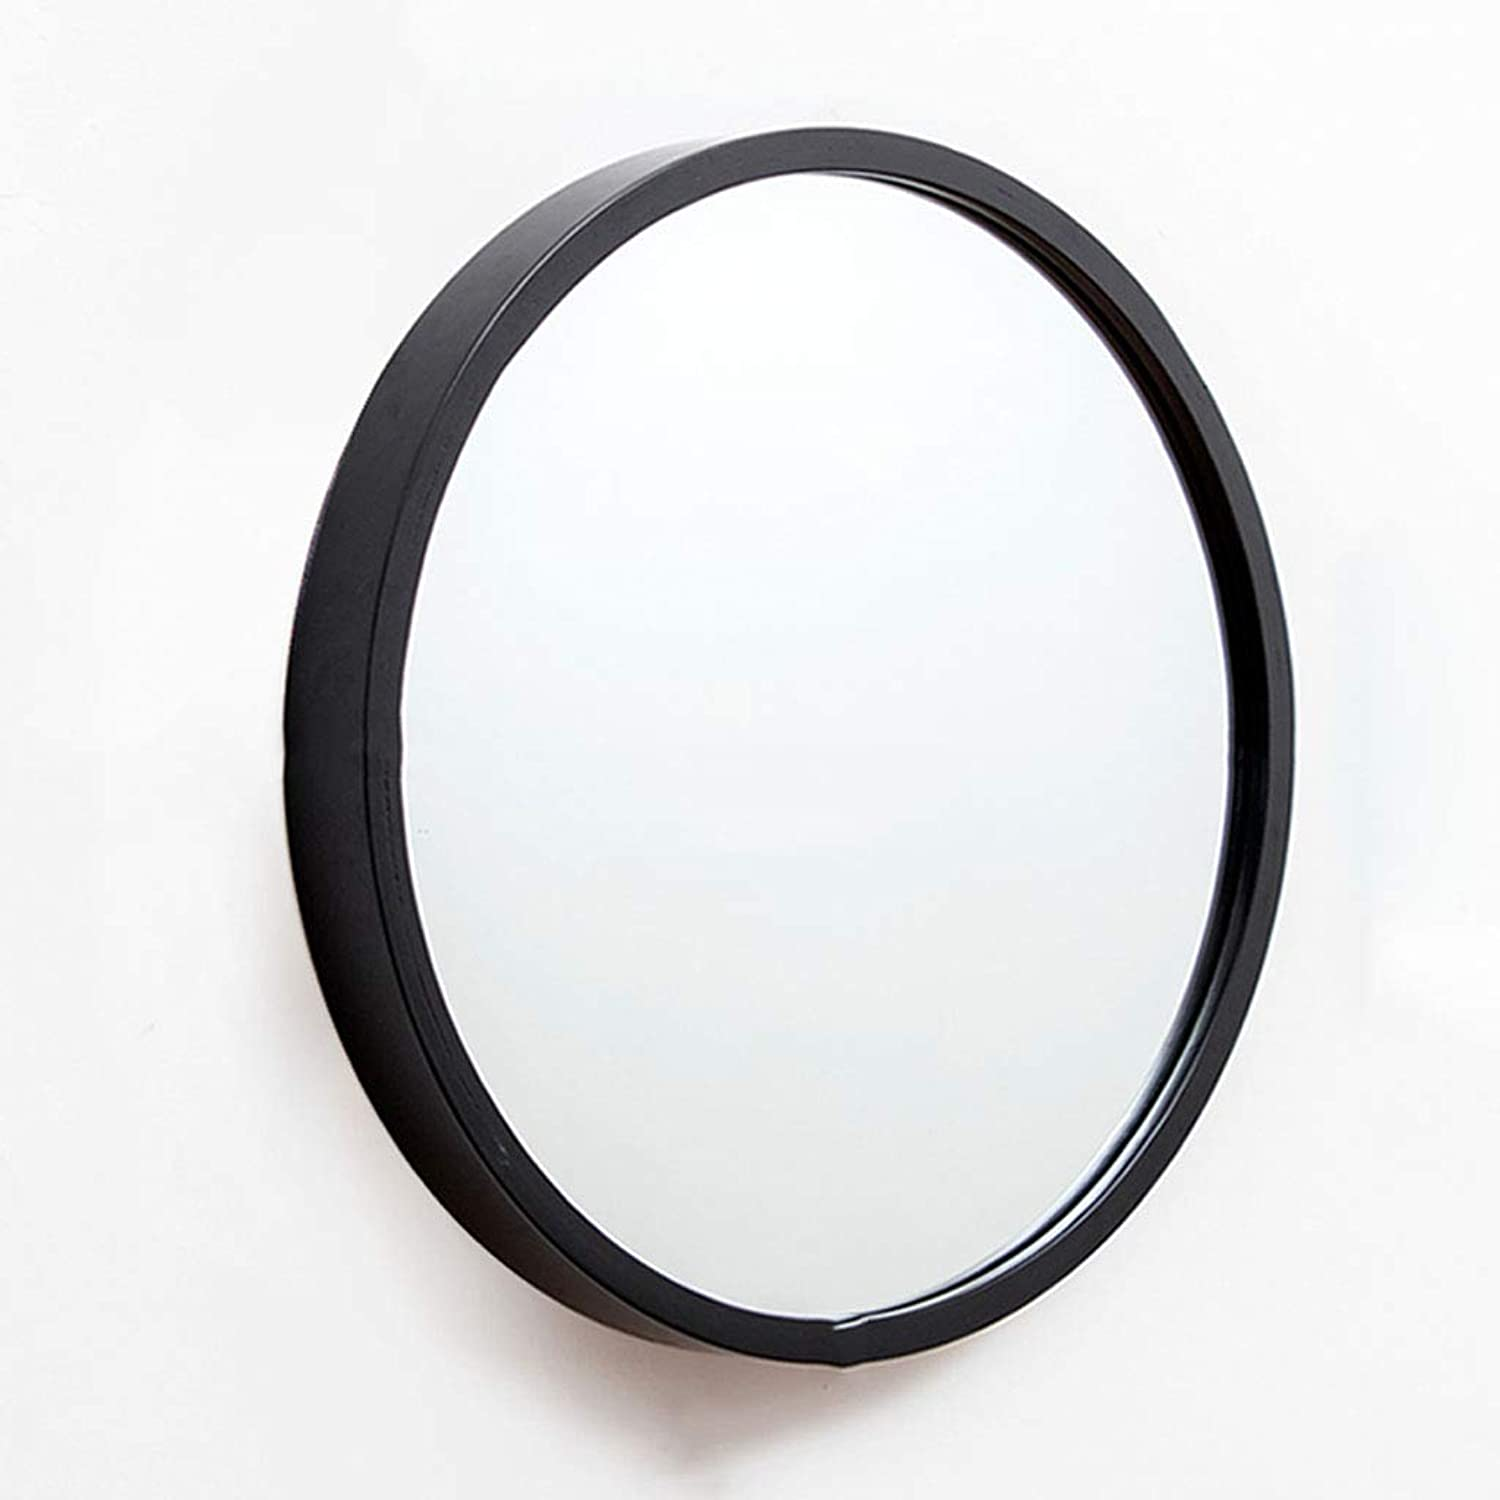 Black Nordic Round Bathroom Mirror Vanity Mirror Bathroom Mirror Wall Hanging Toilet Bathroom Round Mirror Wall Decoration Hanging Mirror